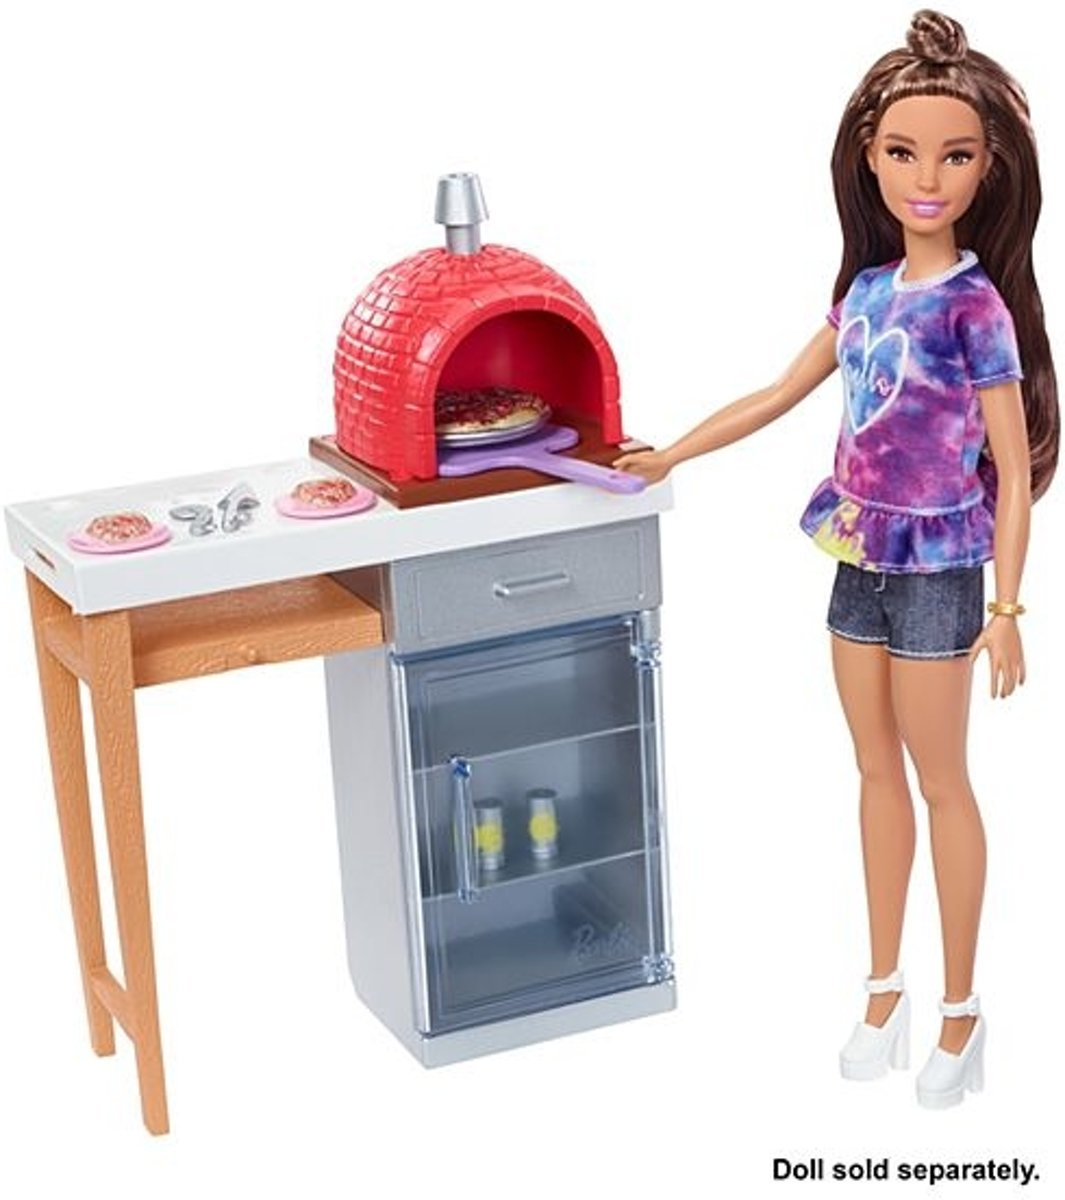 Barbie Brick Oven